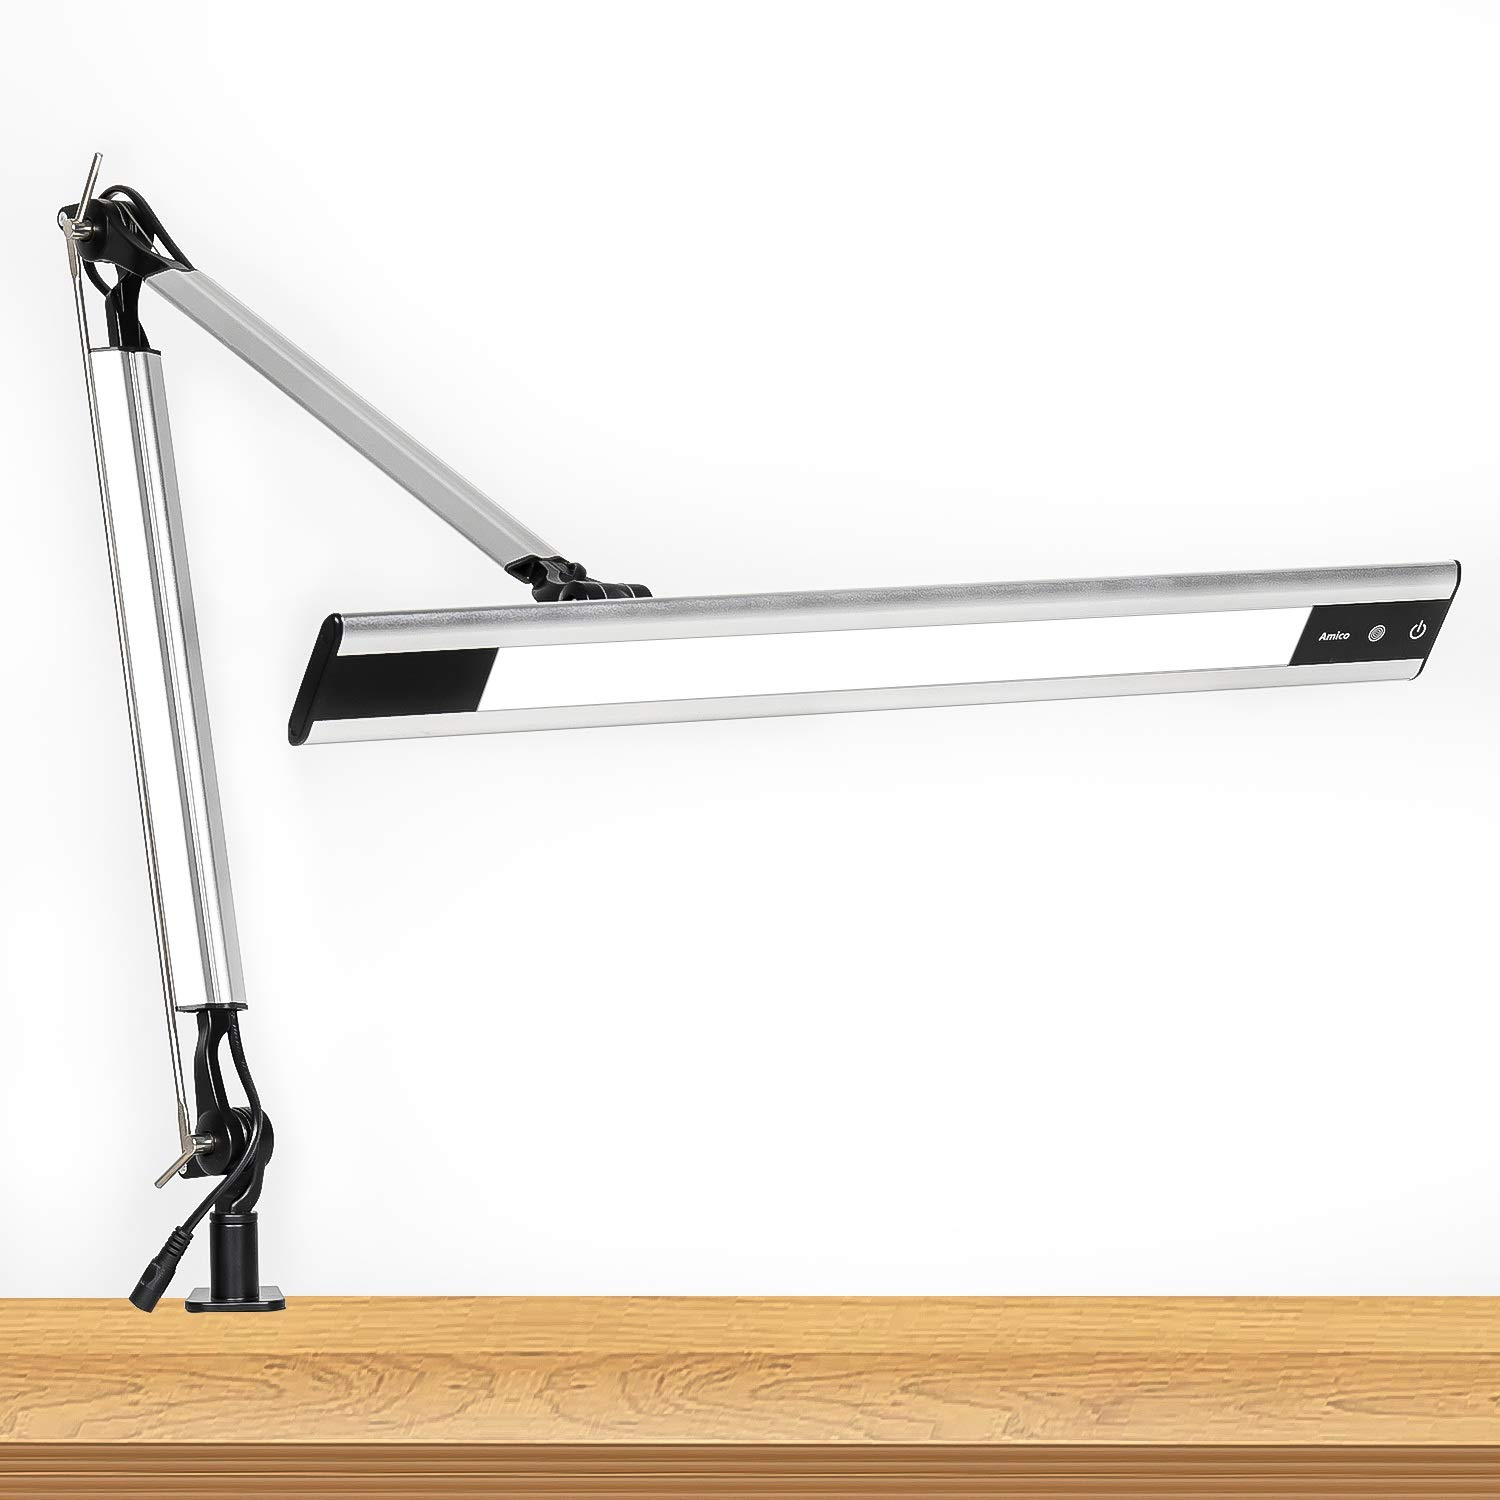 Amico 11W LED Architect Desk Lamp/Clamp Lamp/Metal Swing Arm Task Lamp (Eye-Protective, Touch Control, 4-Level Dimmer/4 Lighting Modes, Memory Function) Adjustable Drafting Work/Office Light